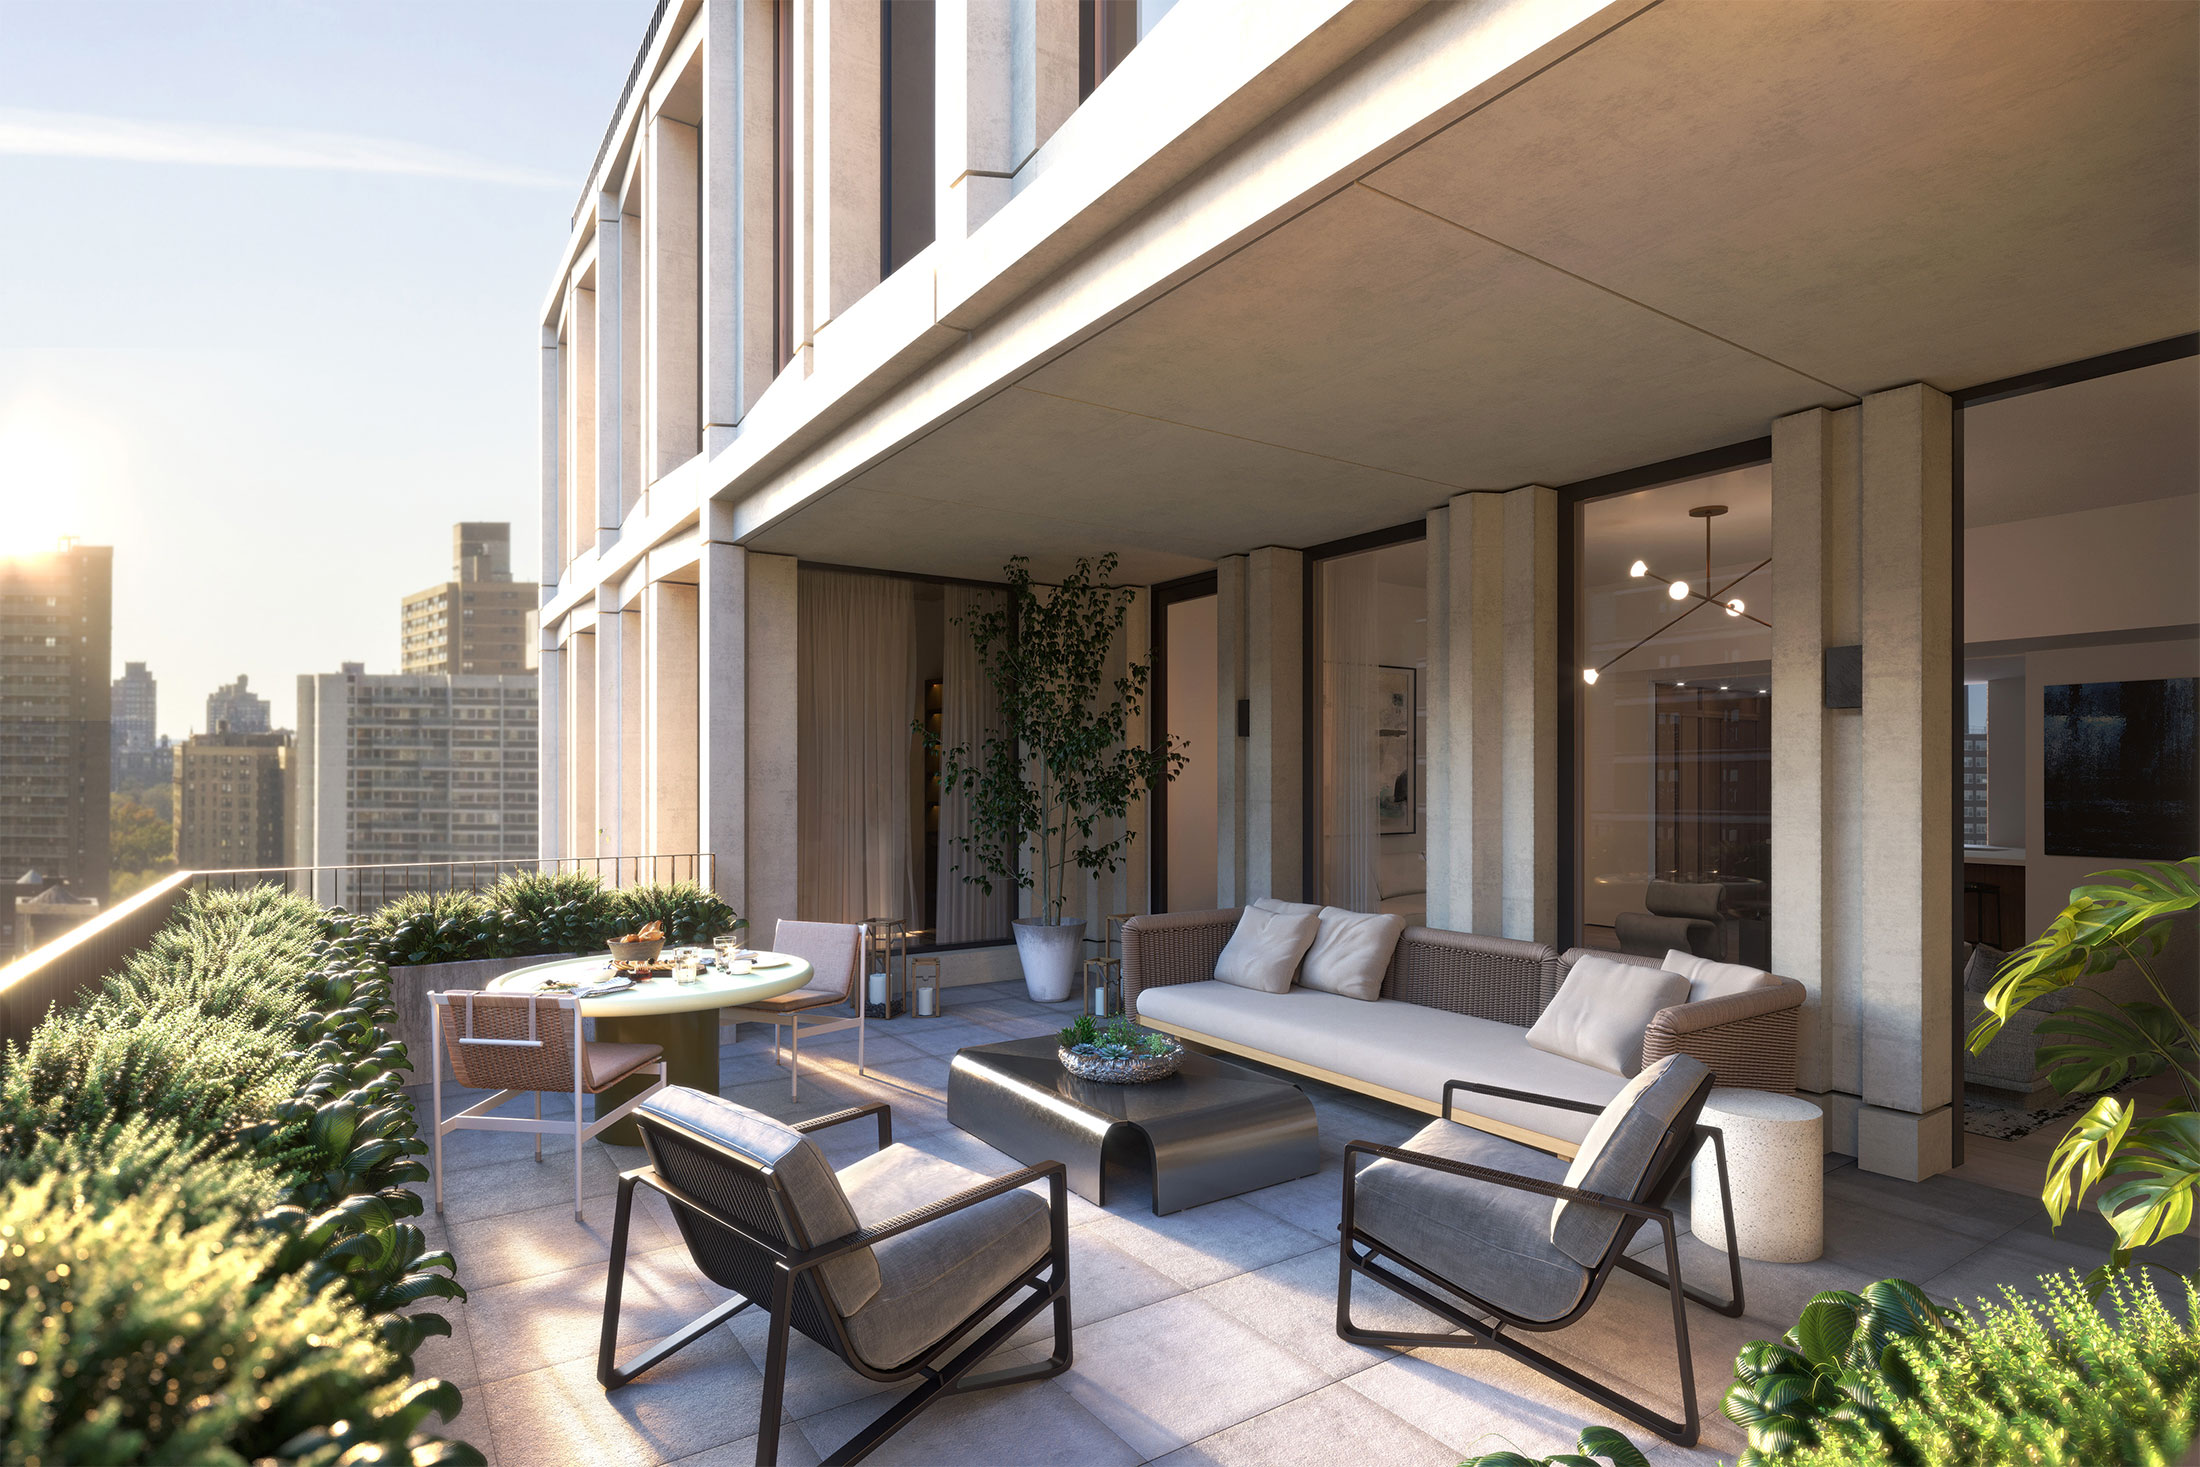 Architectural Rendering of the rooftop of the 212W93 project located on the Upper West Side, New York City